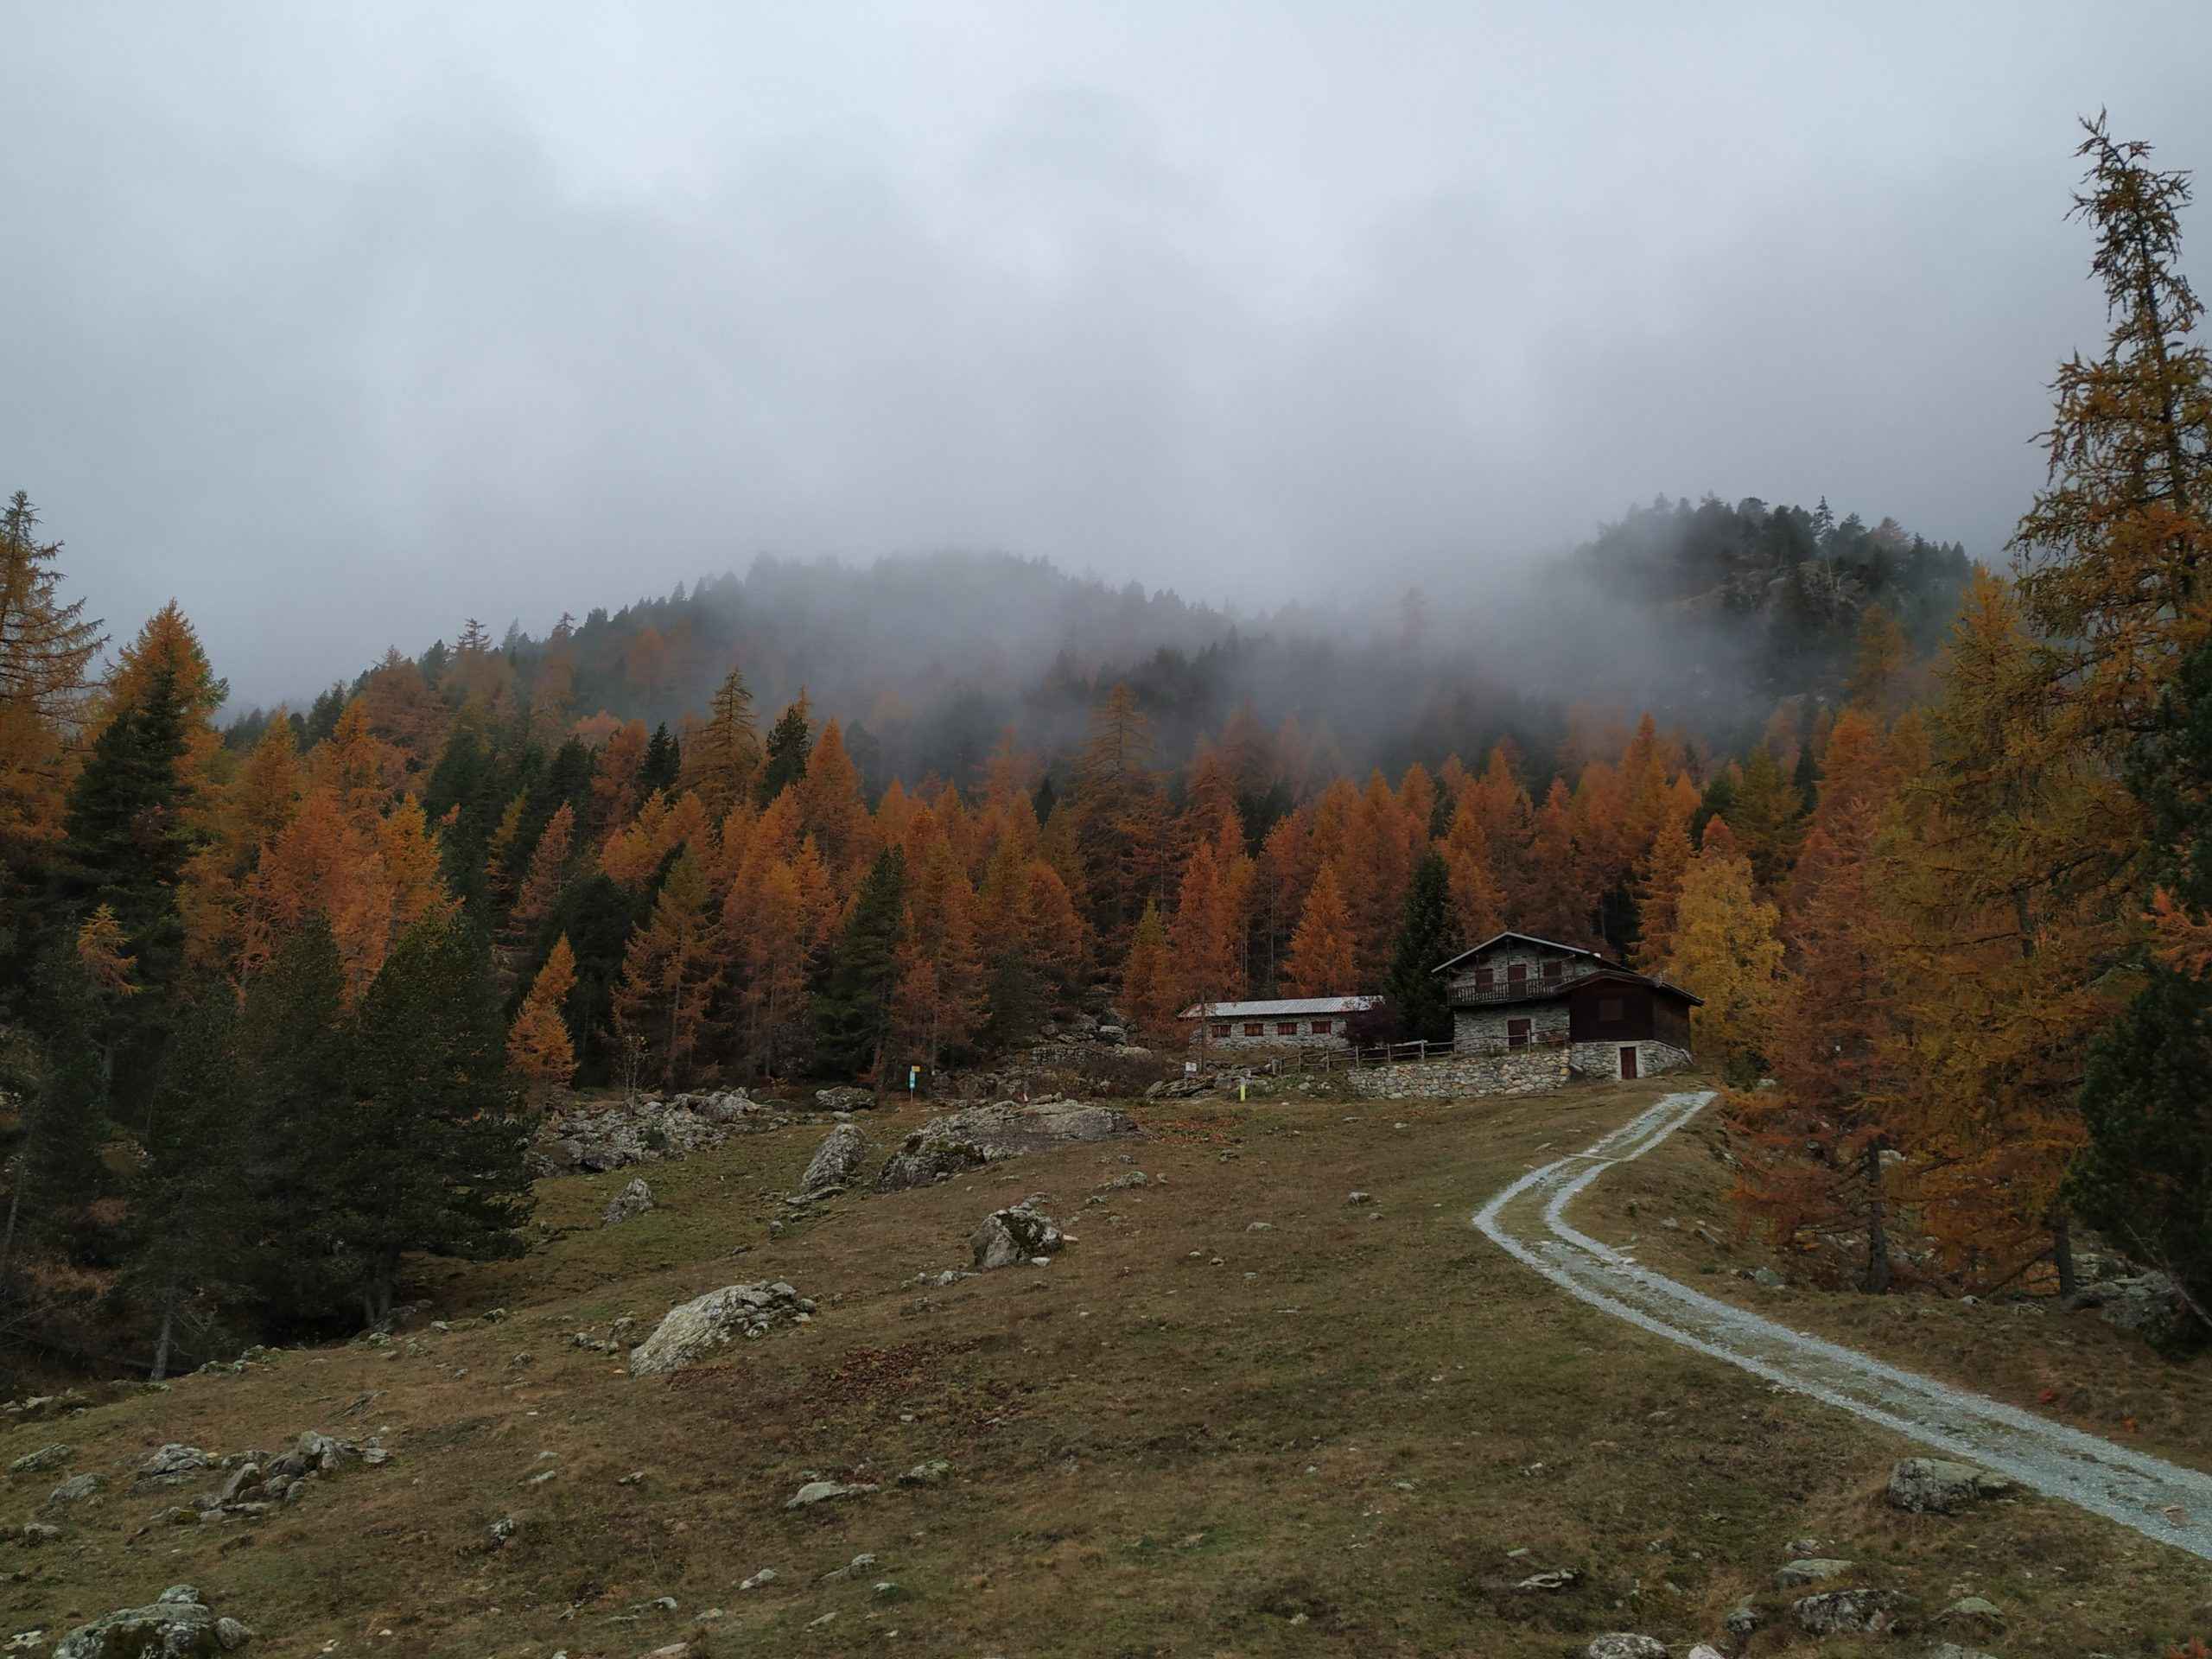 One Weekend in Aosta Valley in November